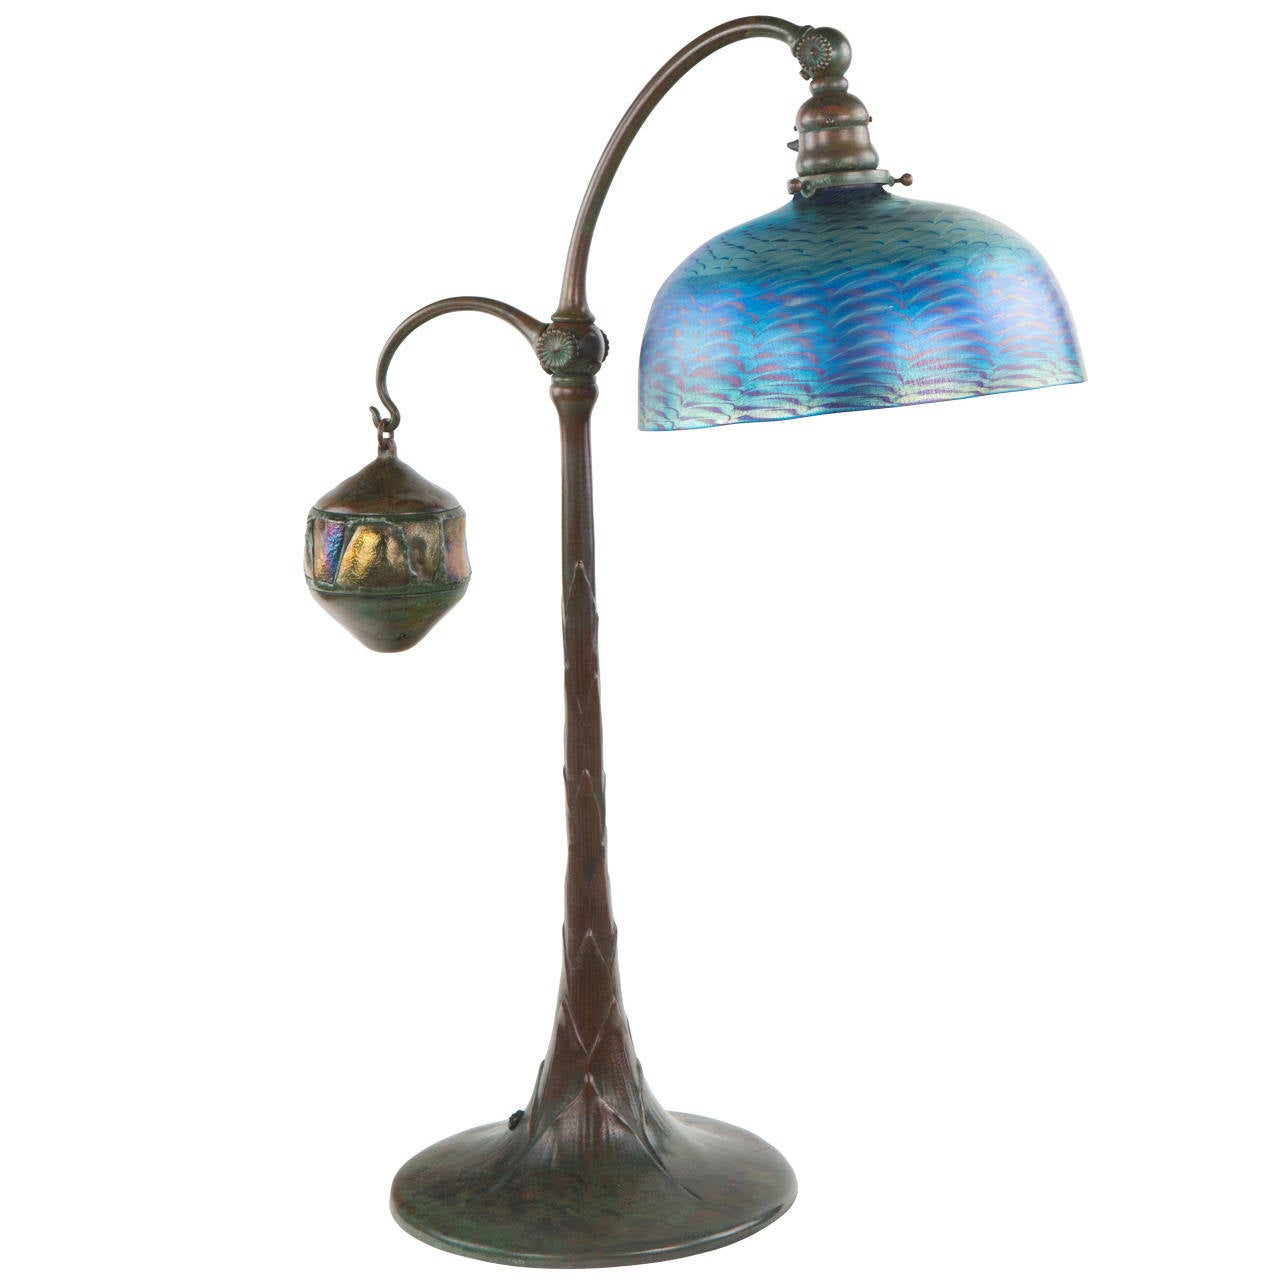 """Turtleback Tile Counter Balance"" Desk Lamp by Tiffany Studios"